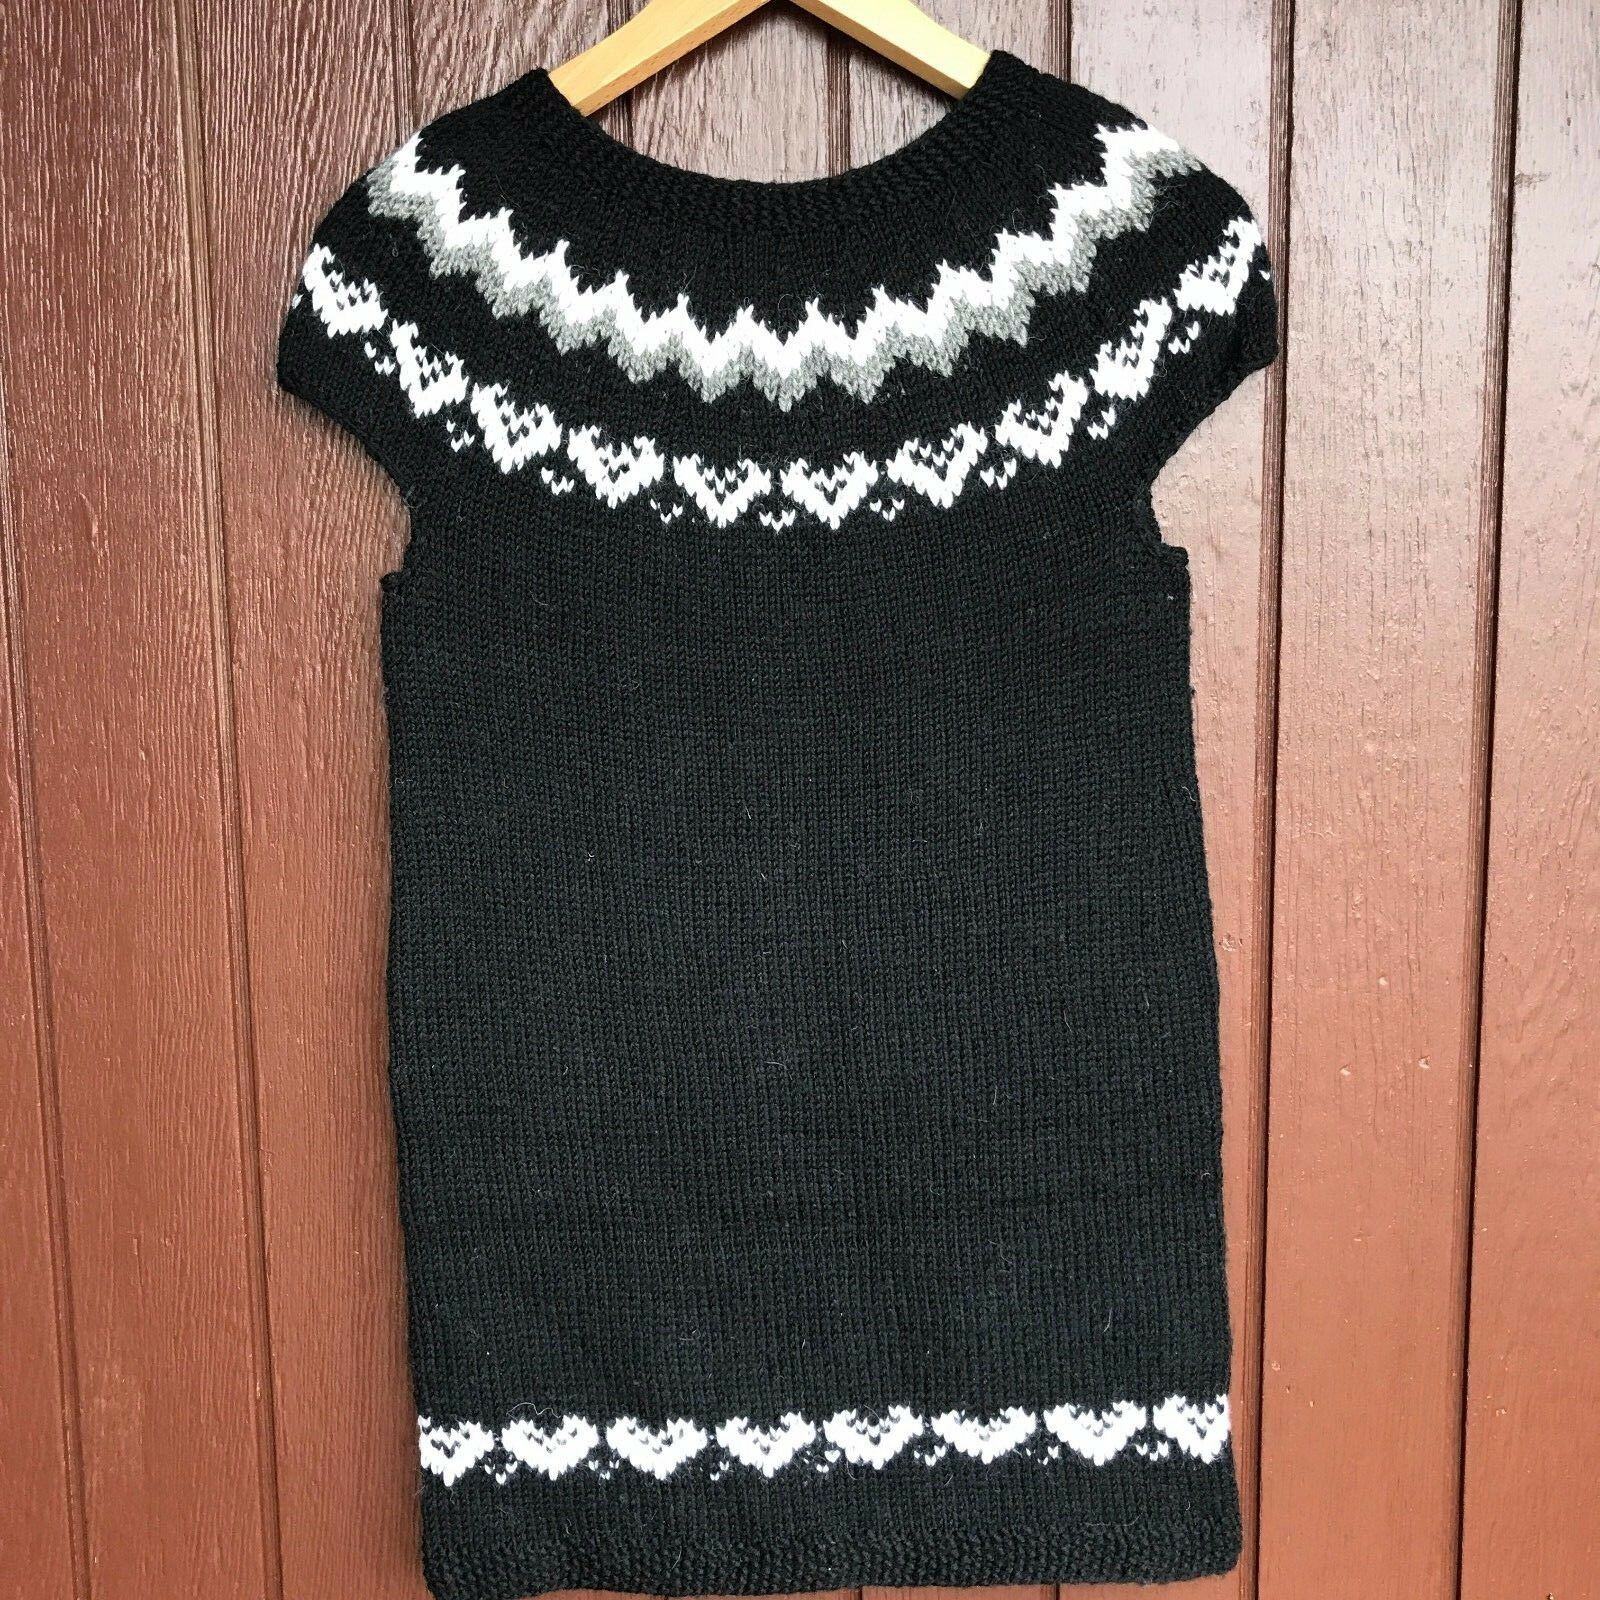 Icelandic Hand knit Vest Size M,Brand New , Sweater Vest,Christmas gift ,Long